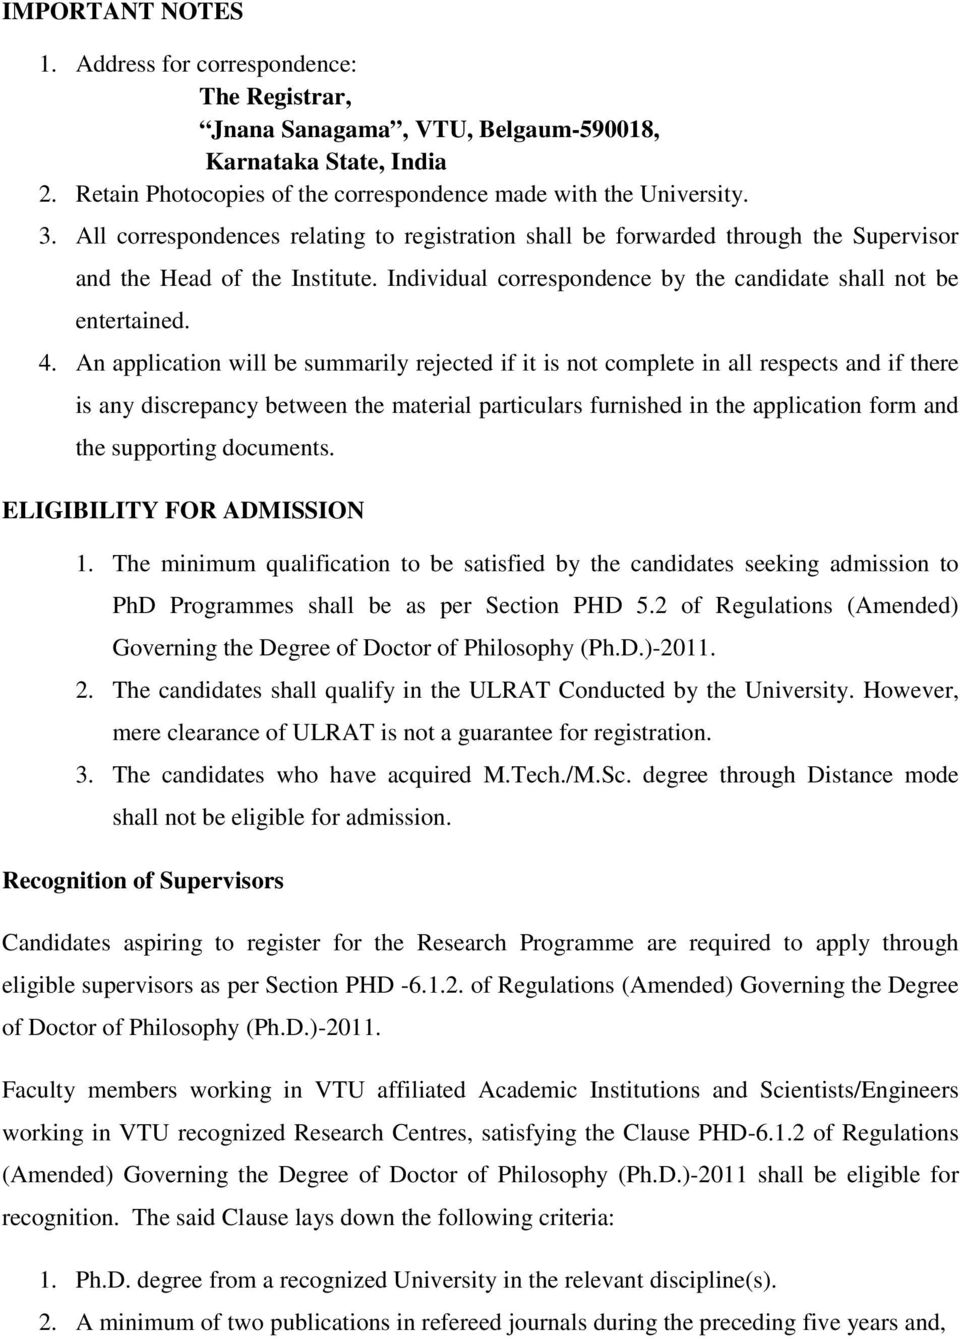 GUIDELINES ON RESEARCH PROGRAMMES AT VTU (Based on Regulations